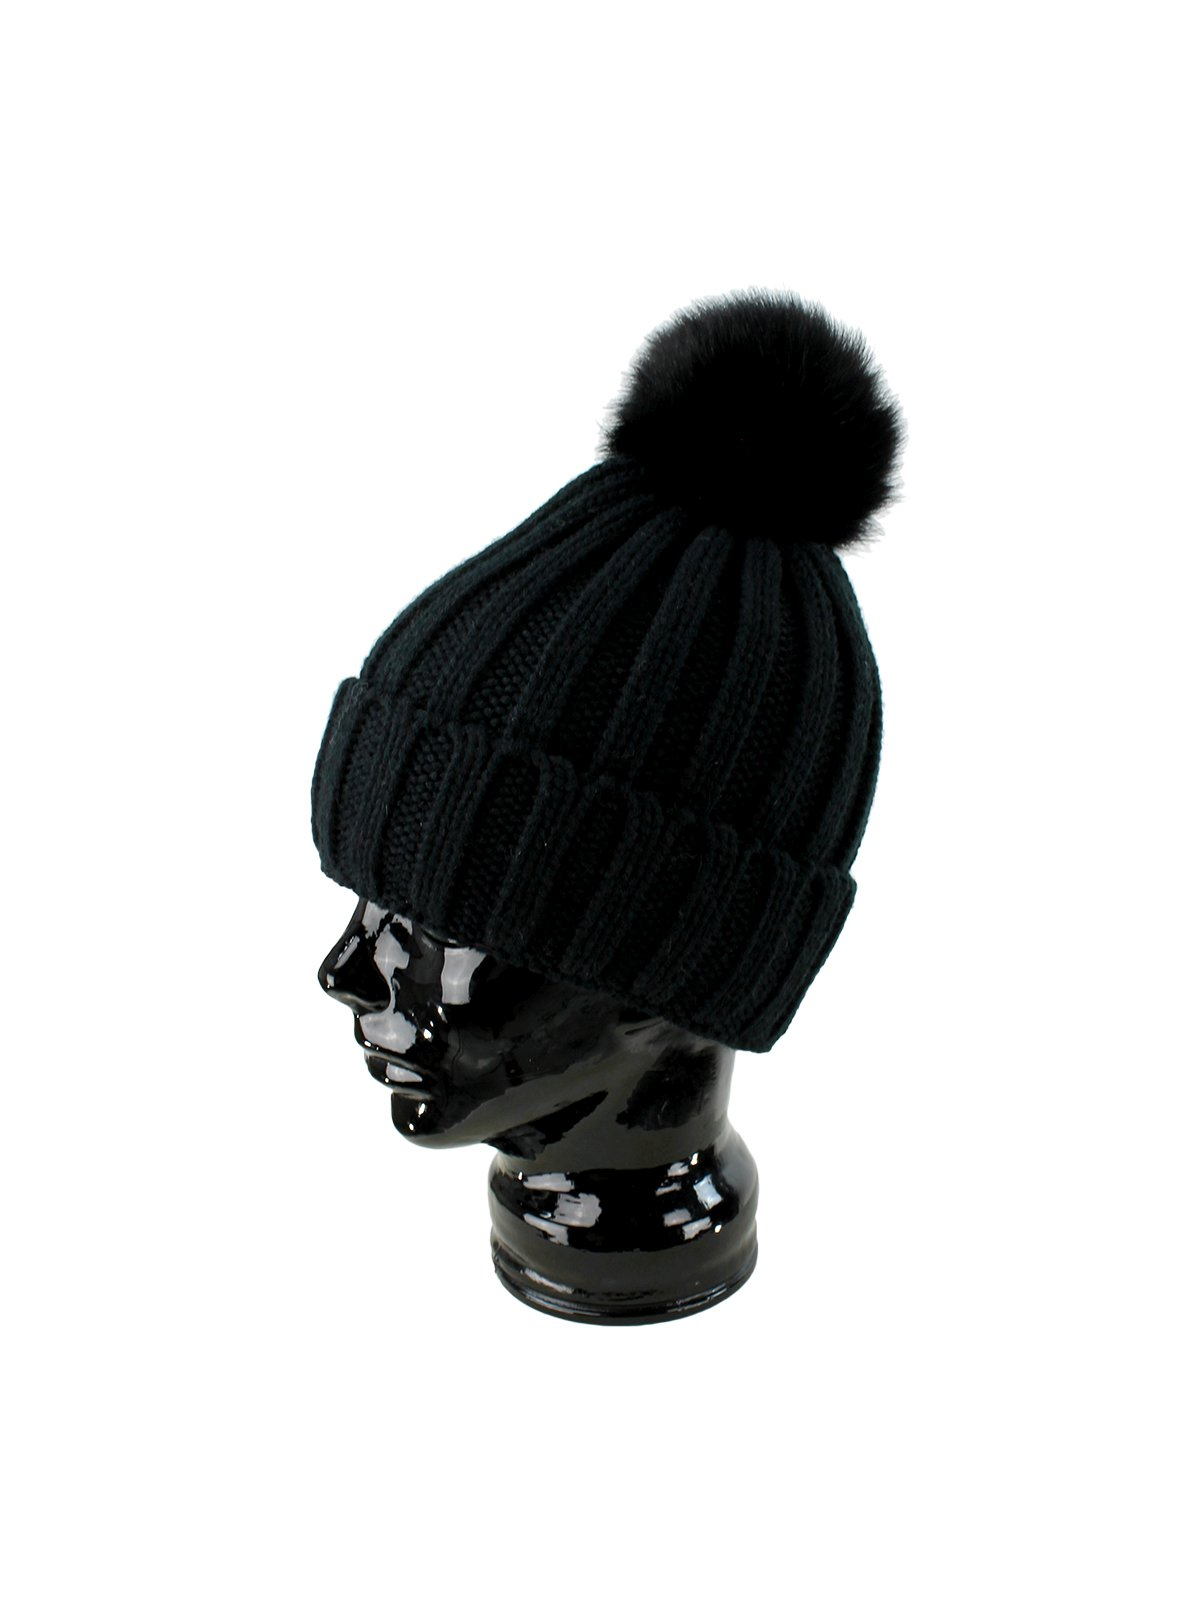 Black Womens Knit Hat with Black Fox Fur Pom Pom  894599dbe10